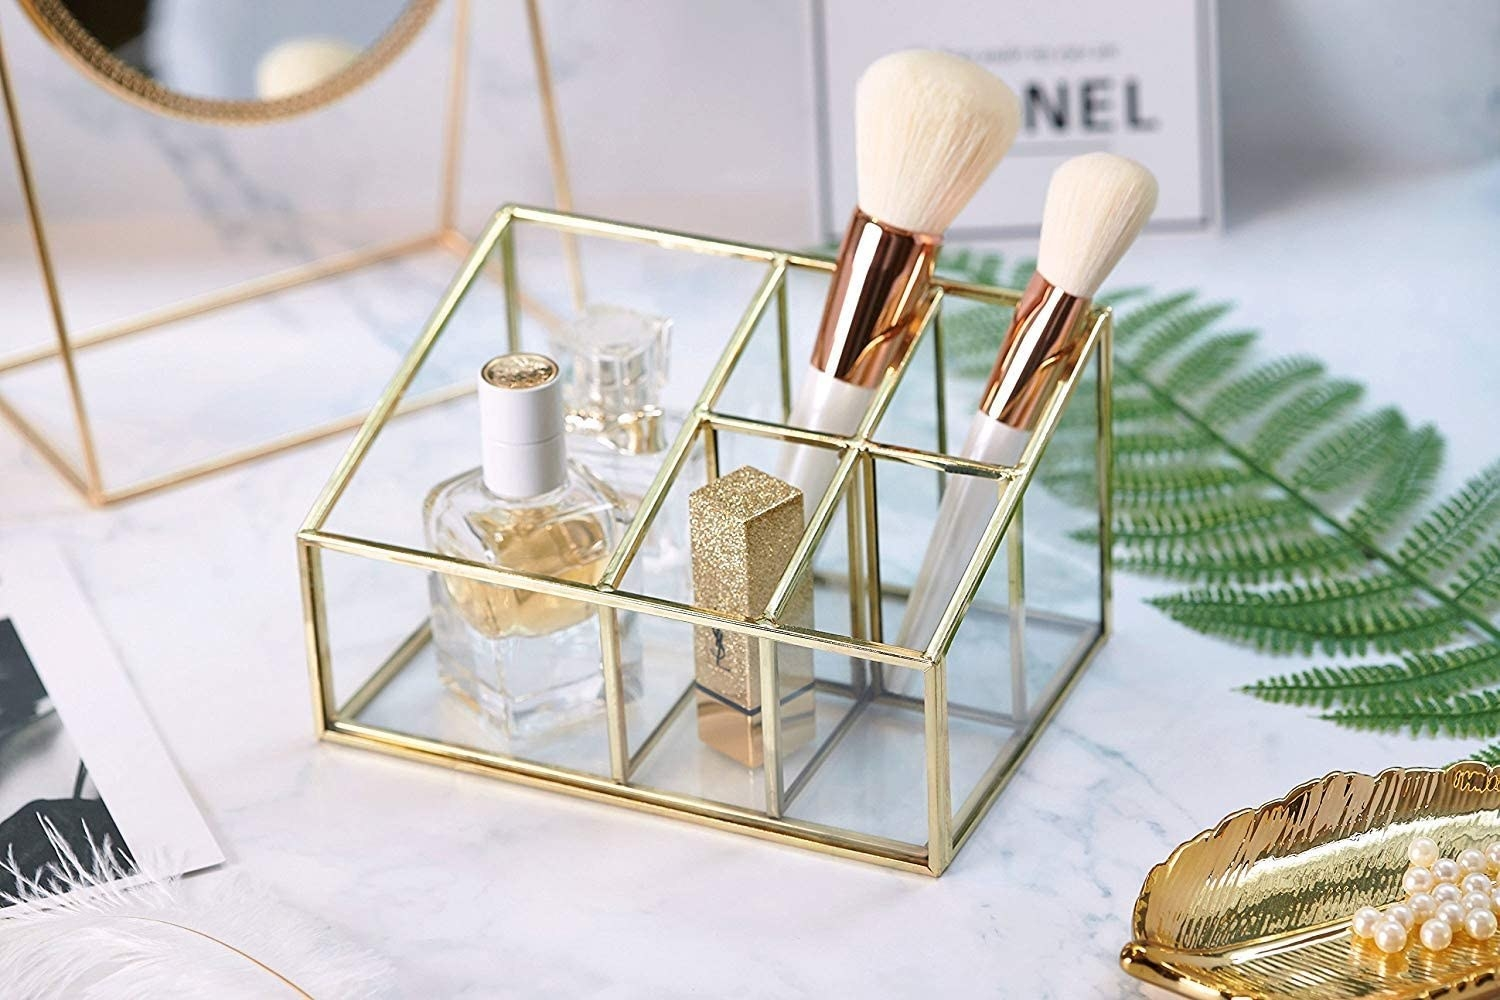 the makeup compartment with gold detailing